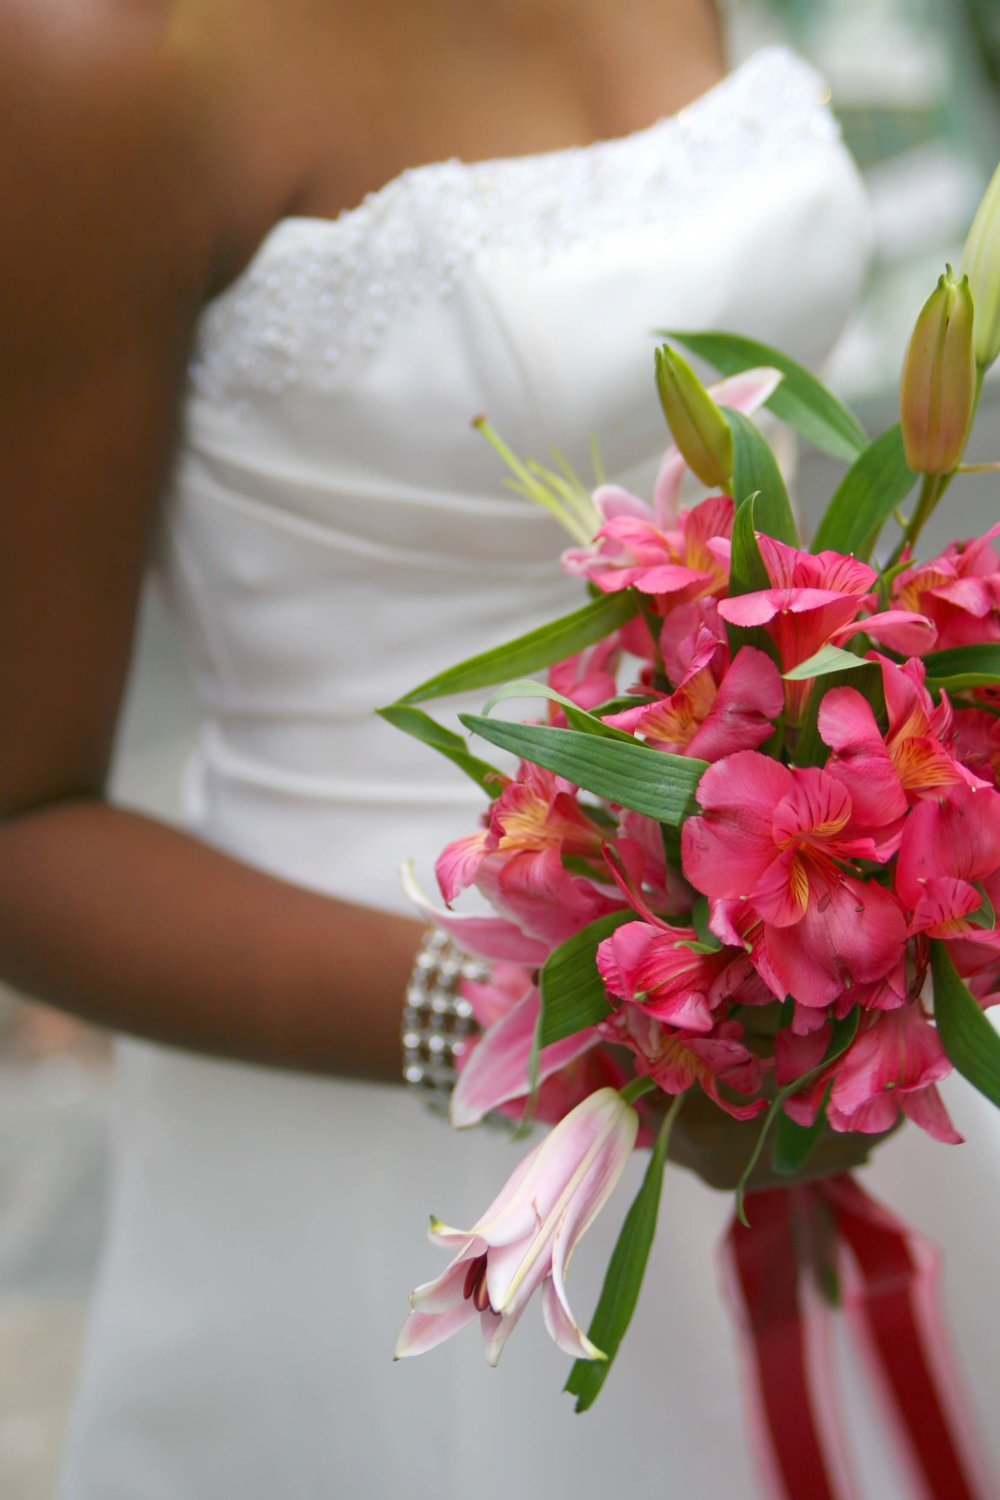 It's fast, easy, and free to deliver your bouquet for flower preservation from the Iowa City, IA area. Call today! 701-400-6162.